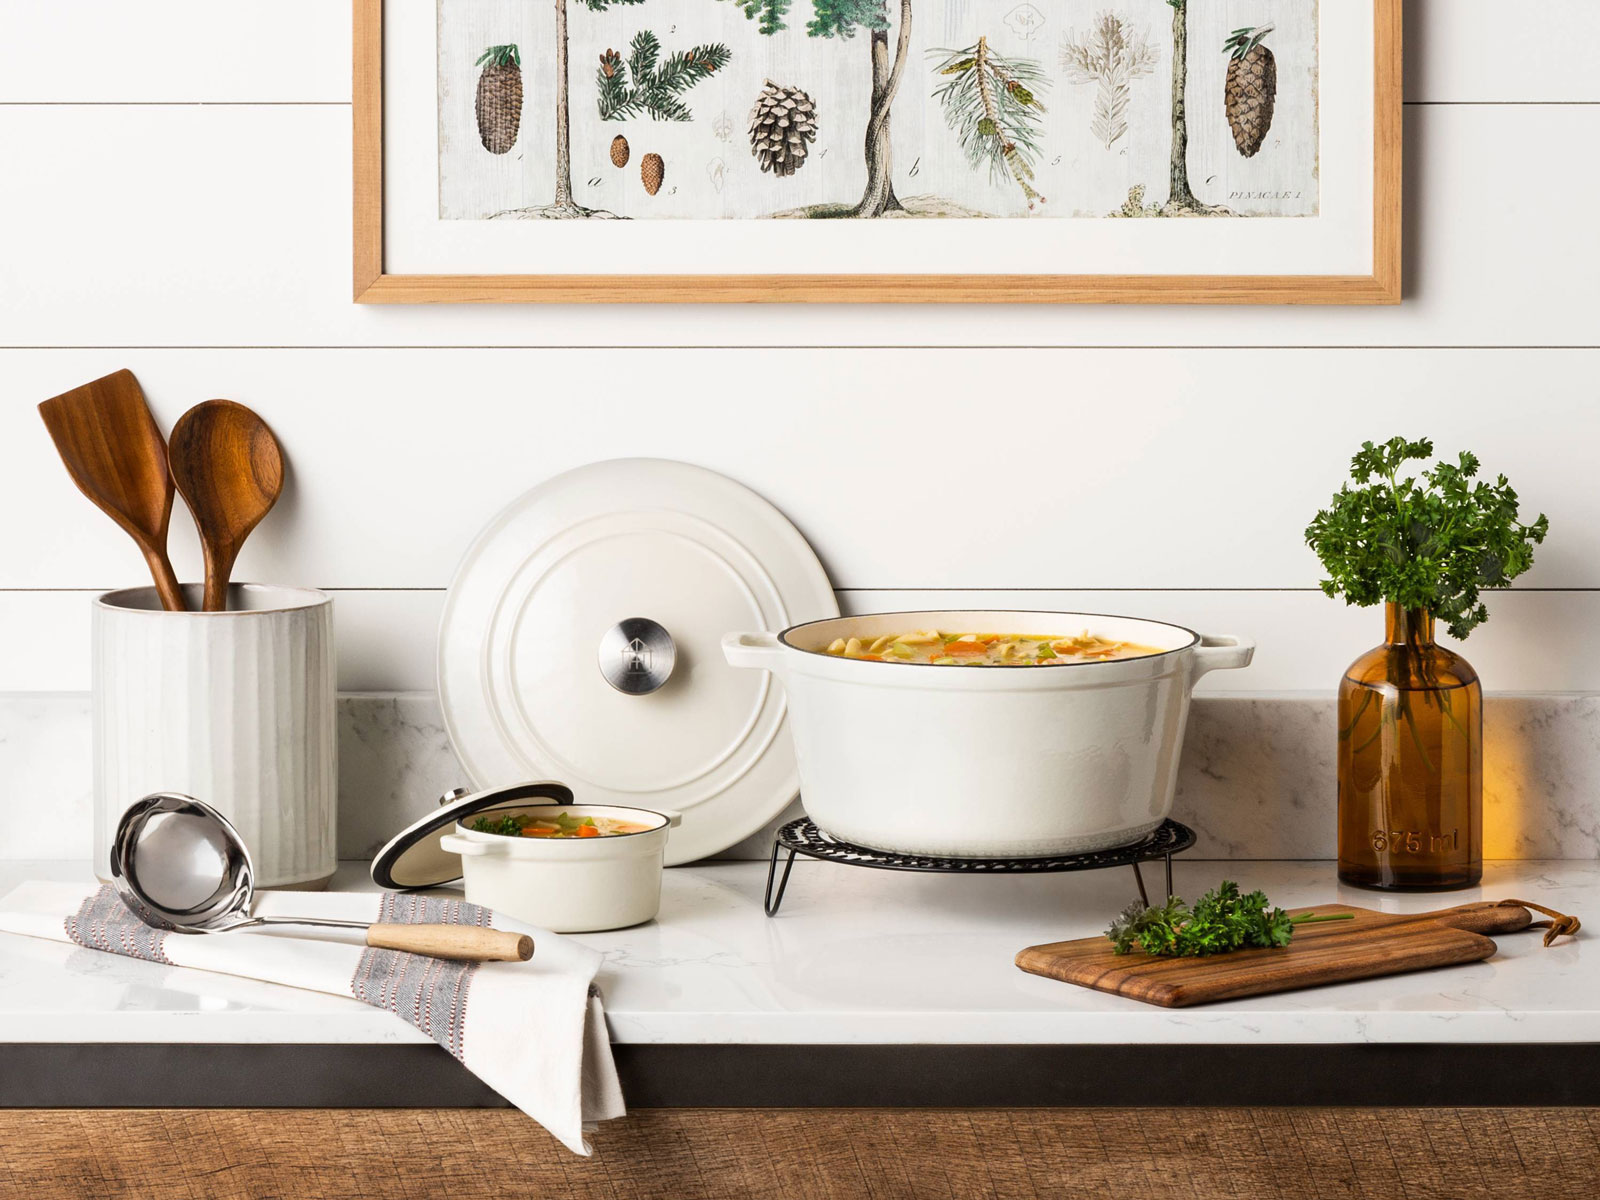 hearth and hand kitchen fall 2019